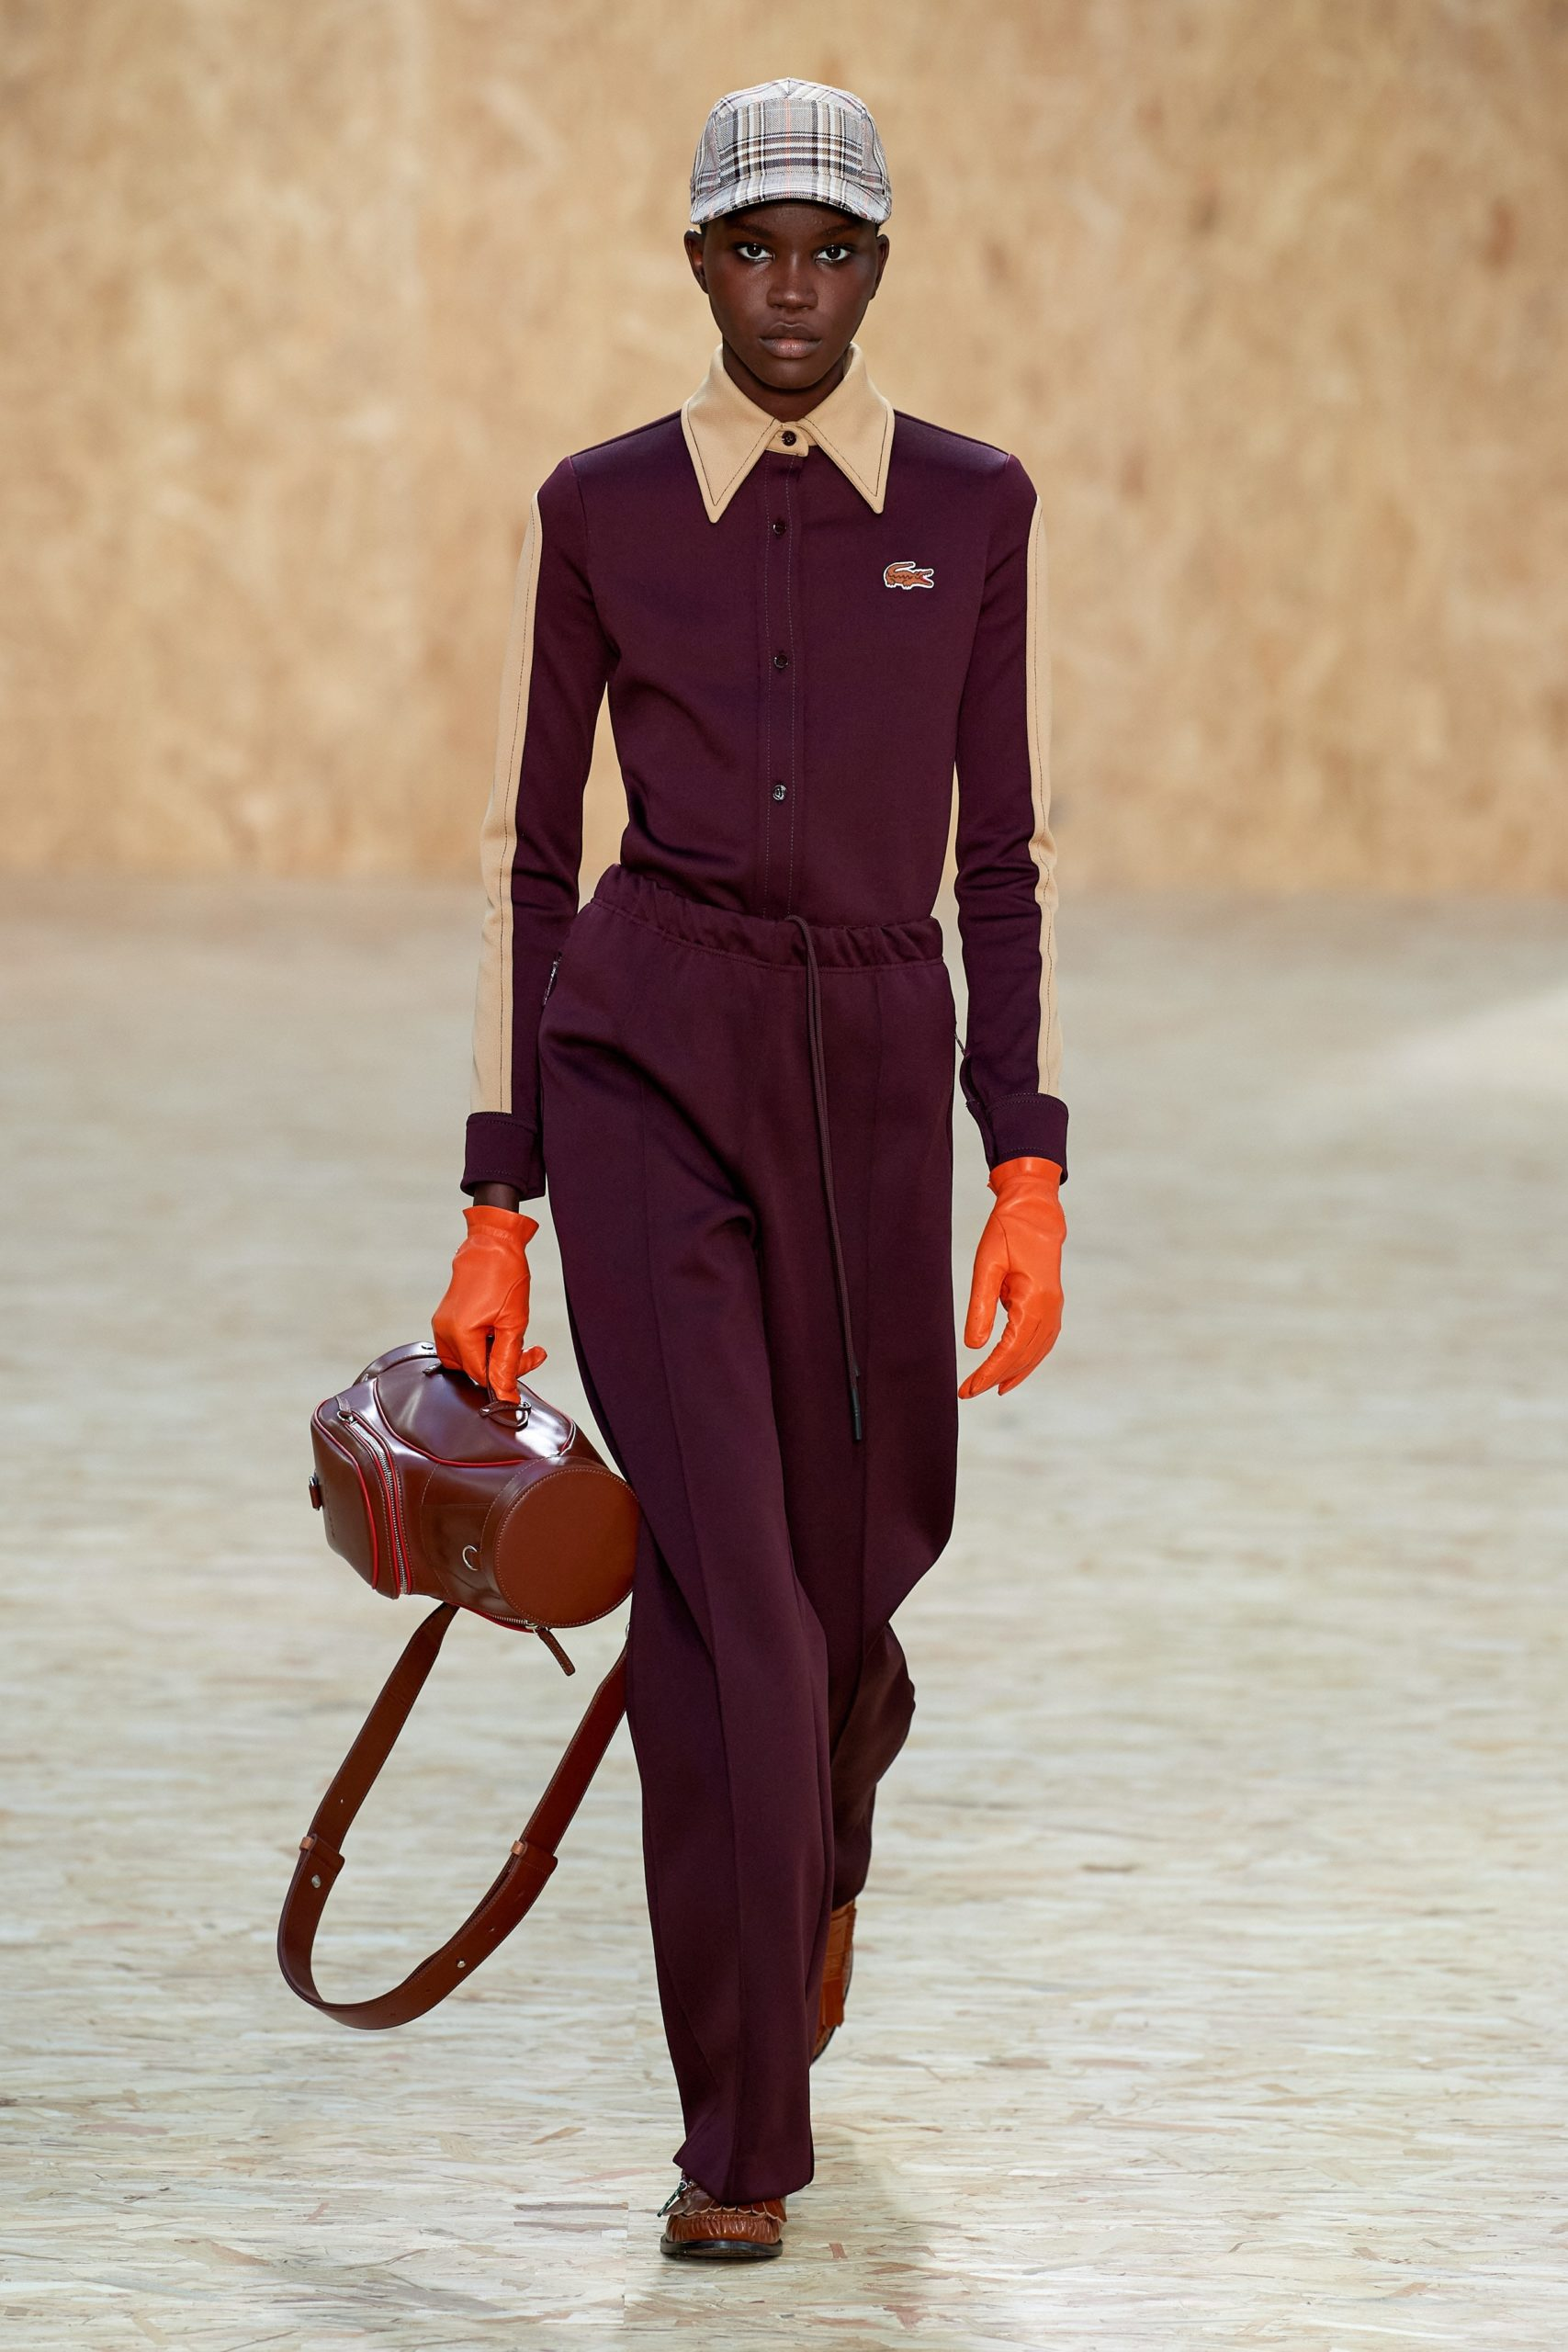 Lacoste Fall 2020 trends runway coverage Ready To Wear Vogue eggplant monochrome